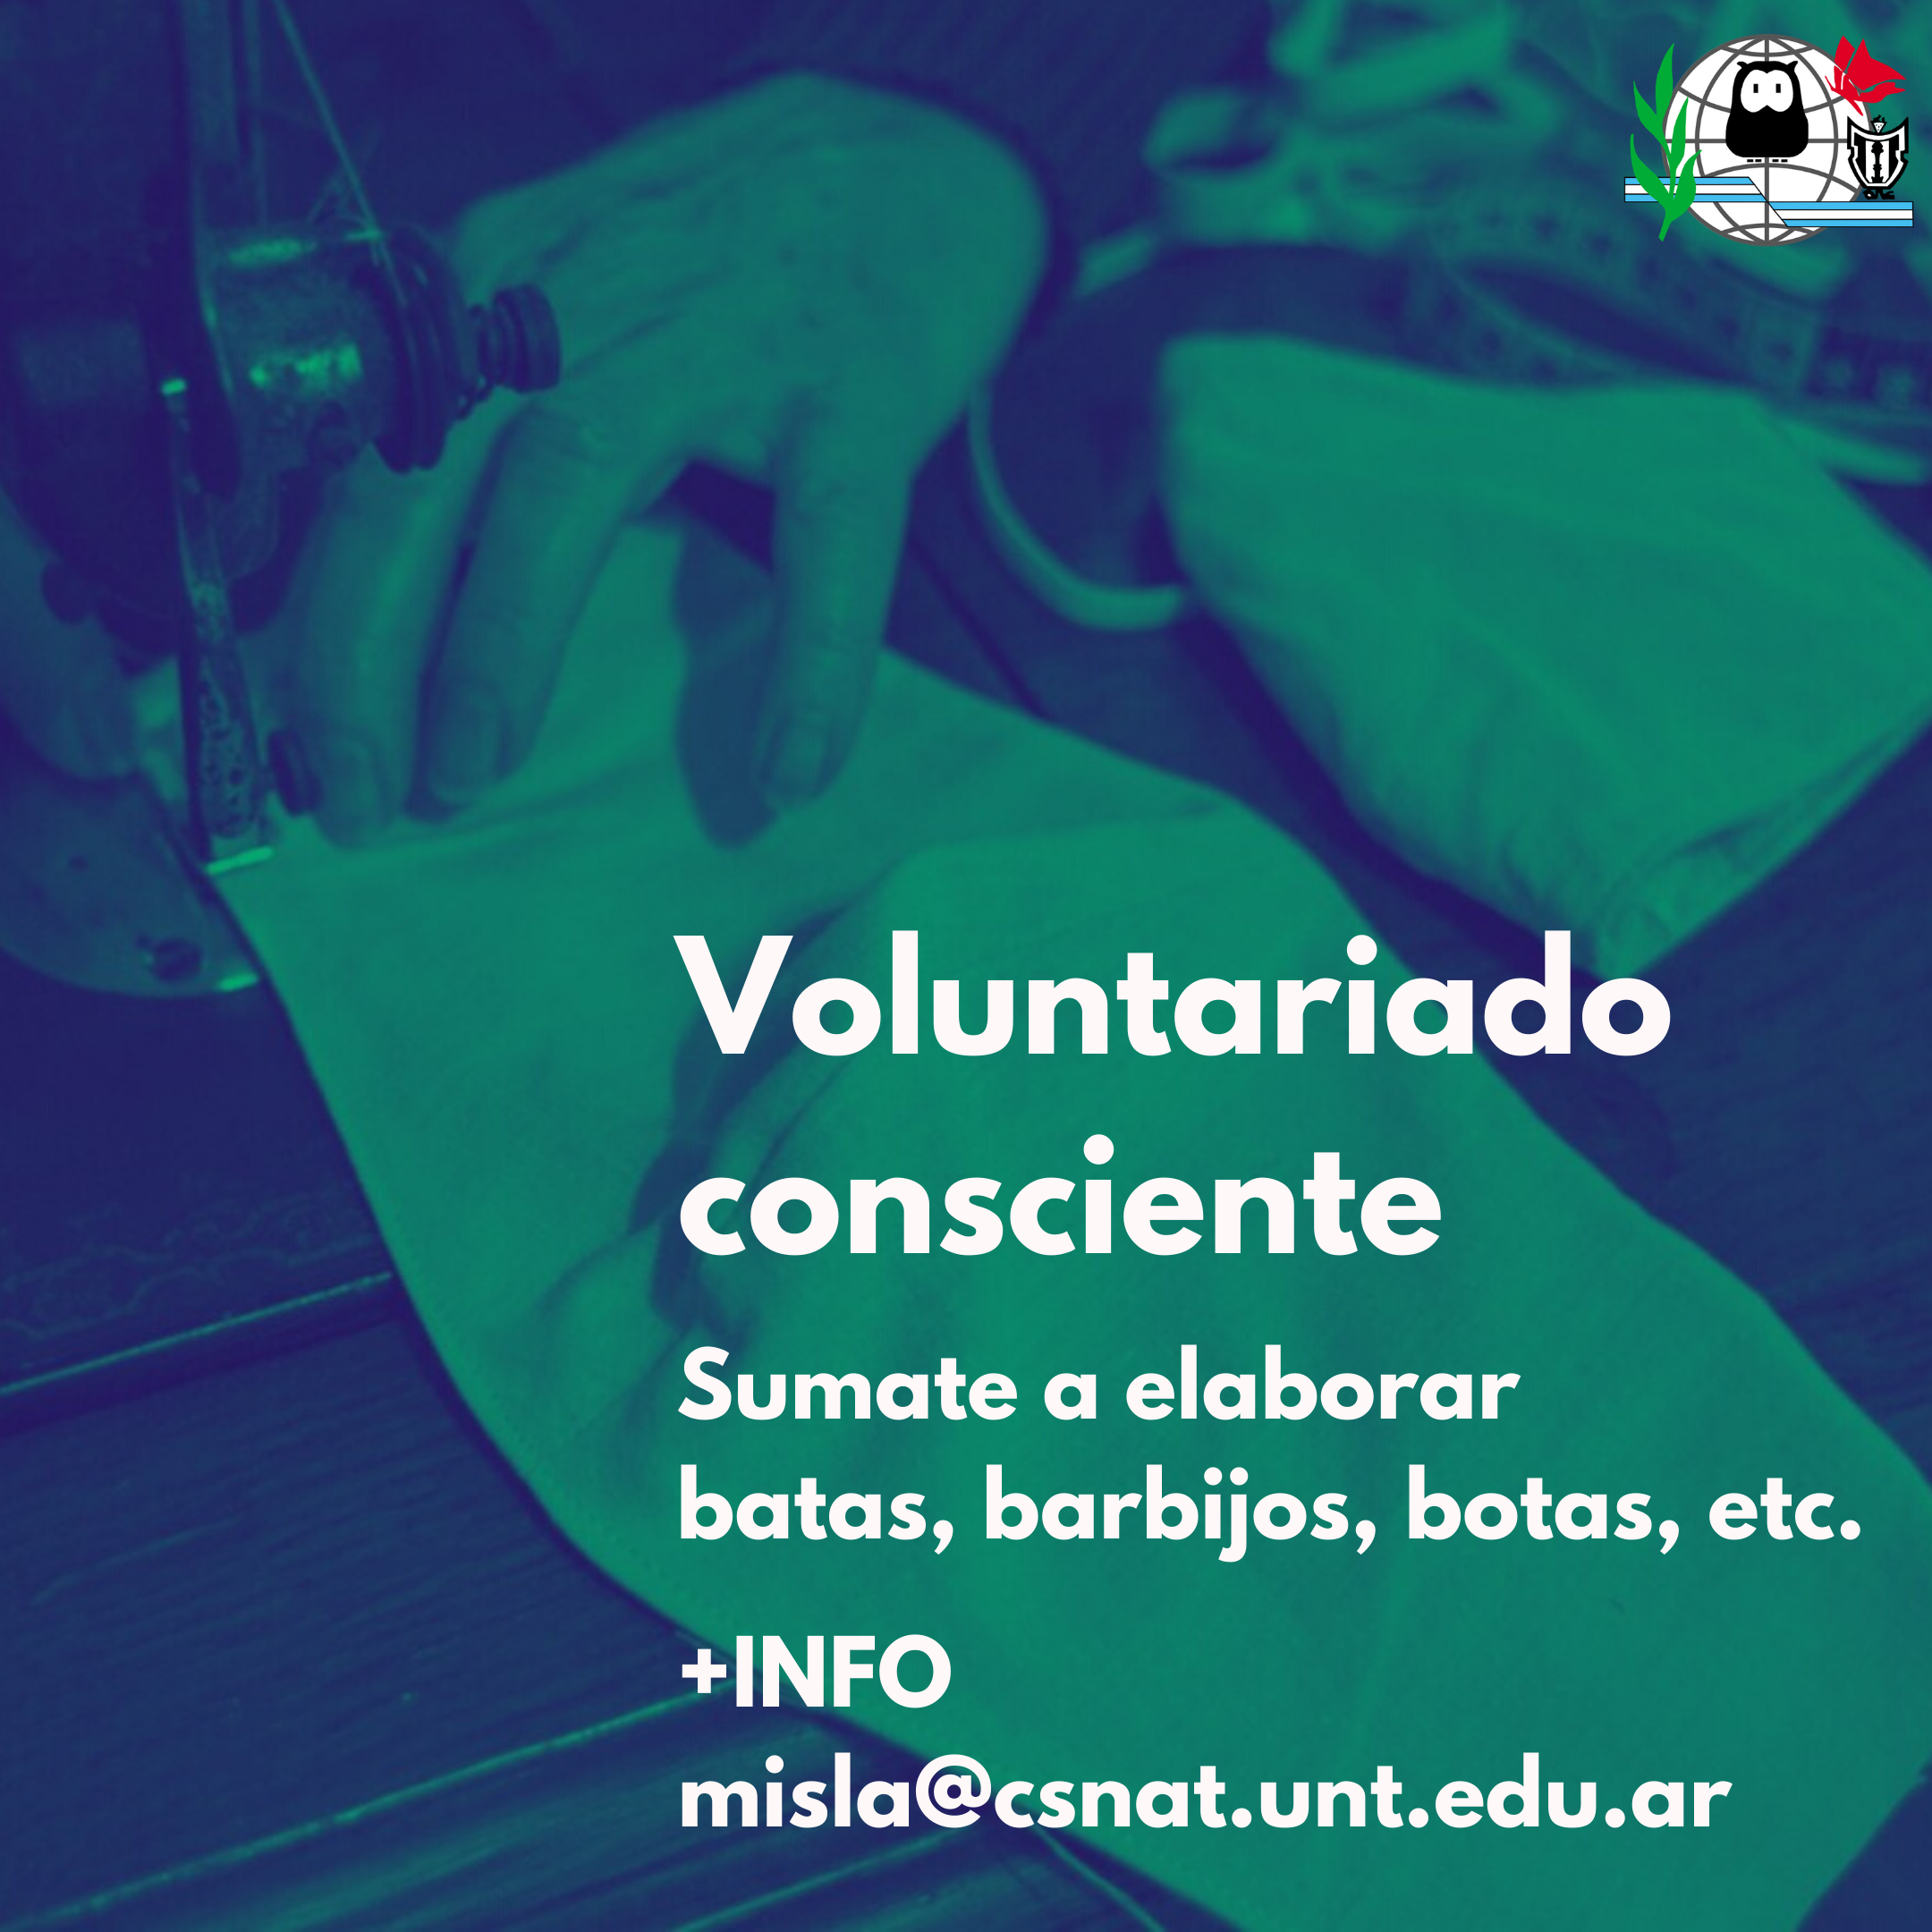 Voluntariadoconsciente